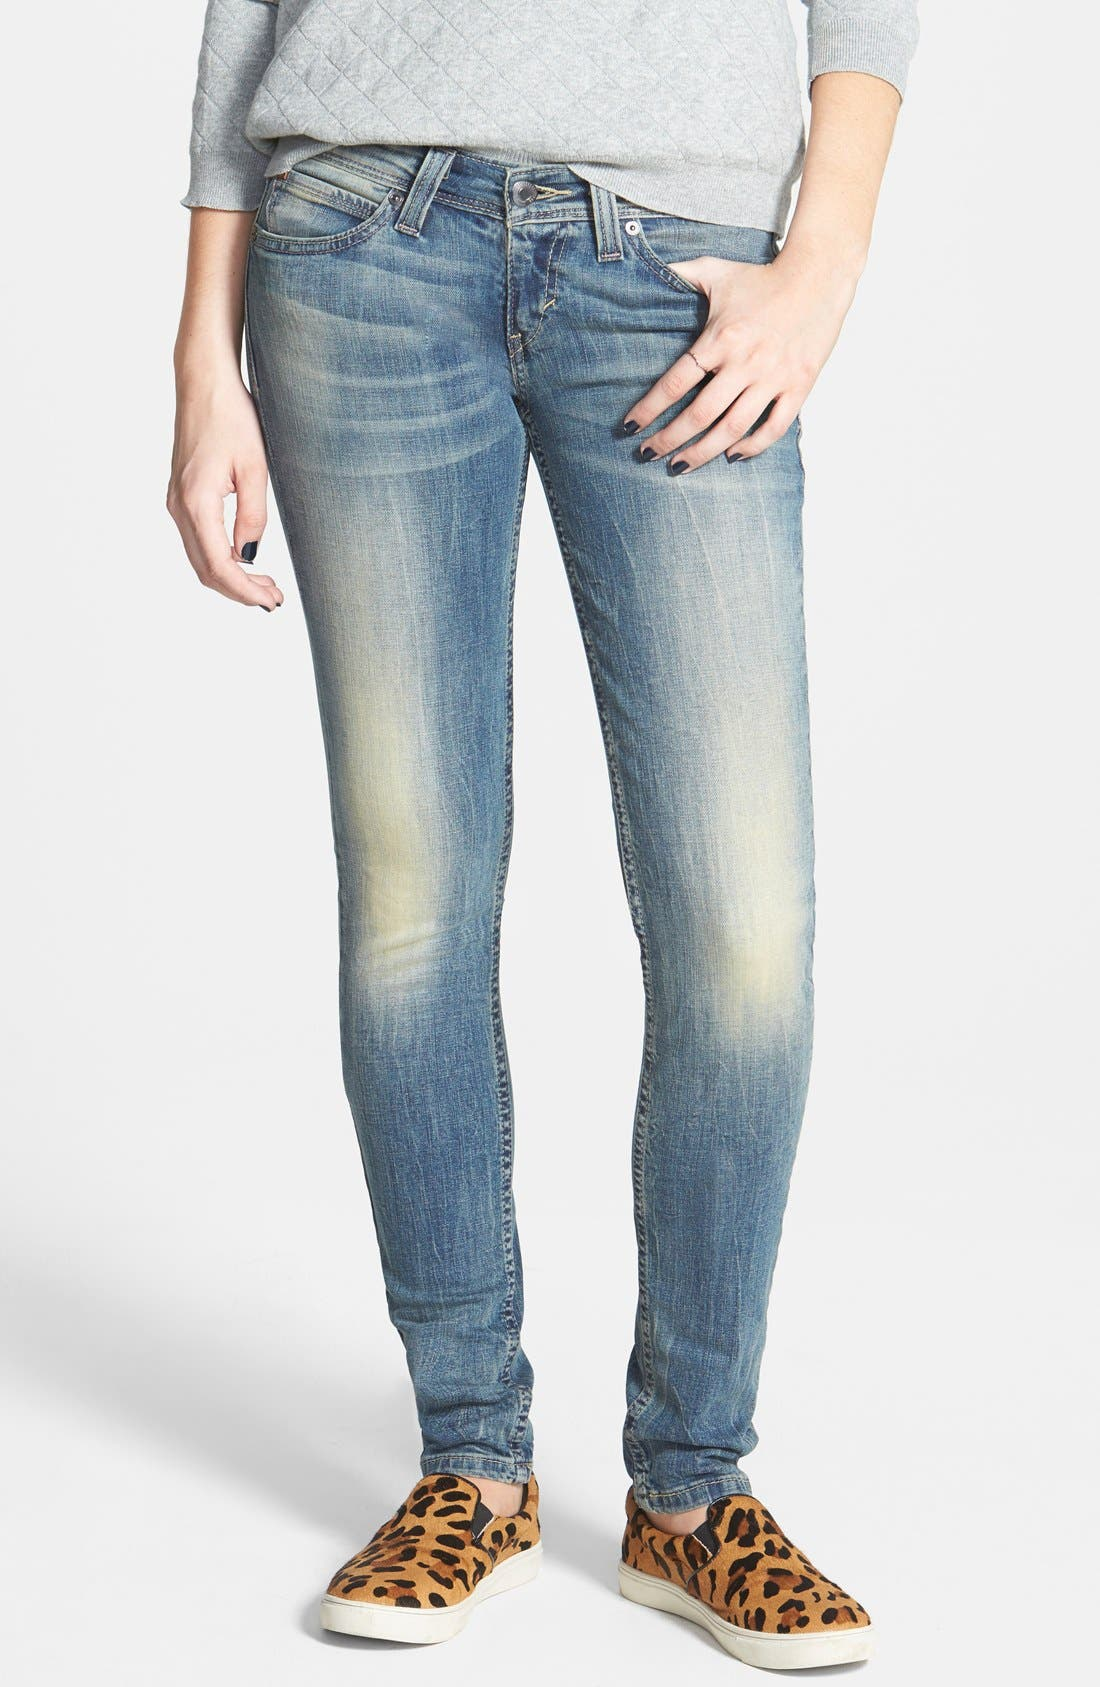 Alternate Image 1 Selected - Levi's® Demi Curve Skinny Jeans (Navy)